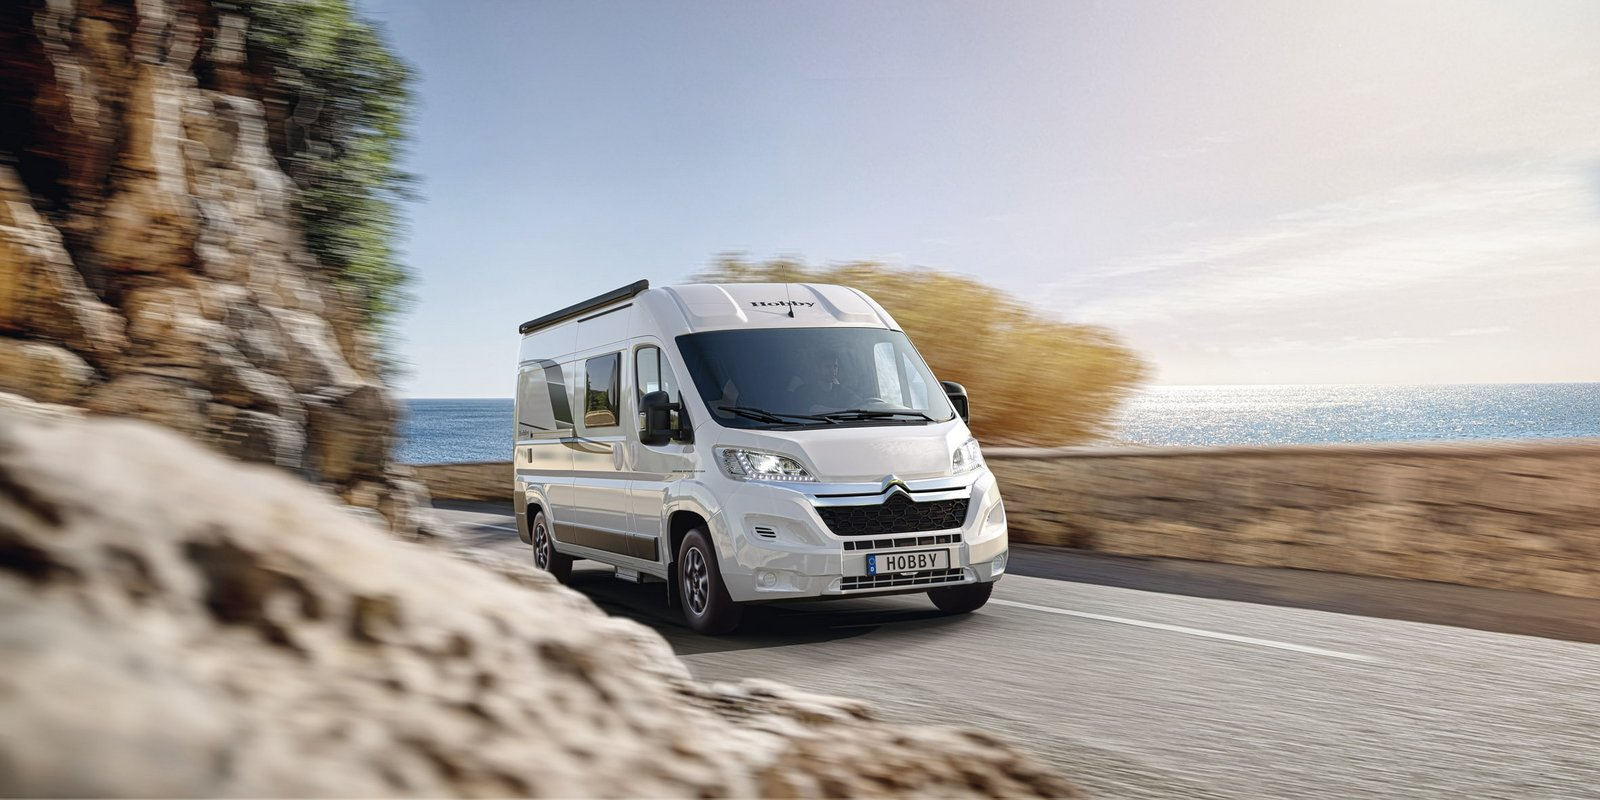 2022-kw-ontour-edition-k60ft-weiss-intro-BEAR-PRESSE-lowres